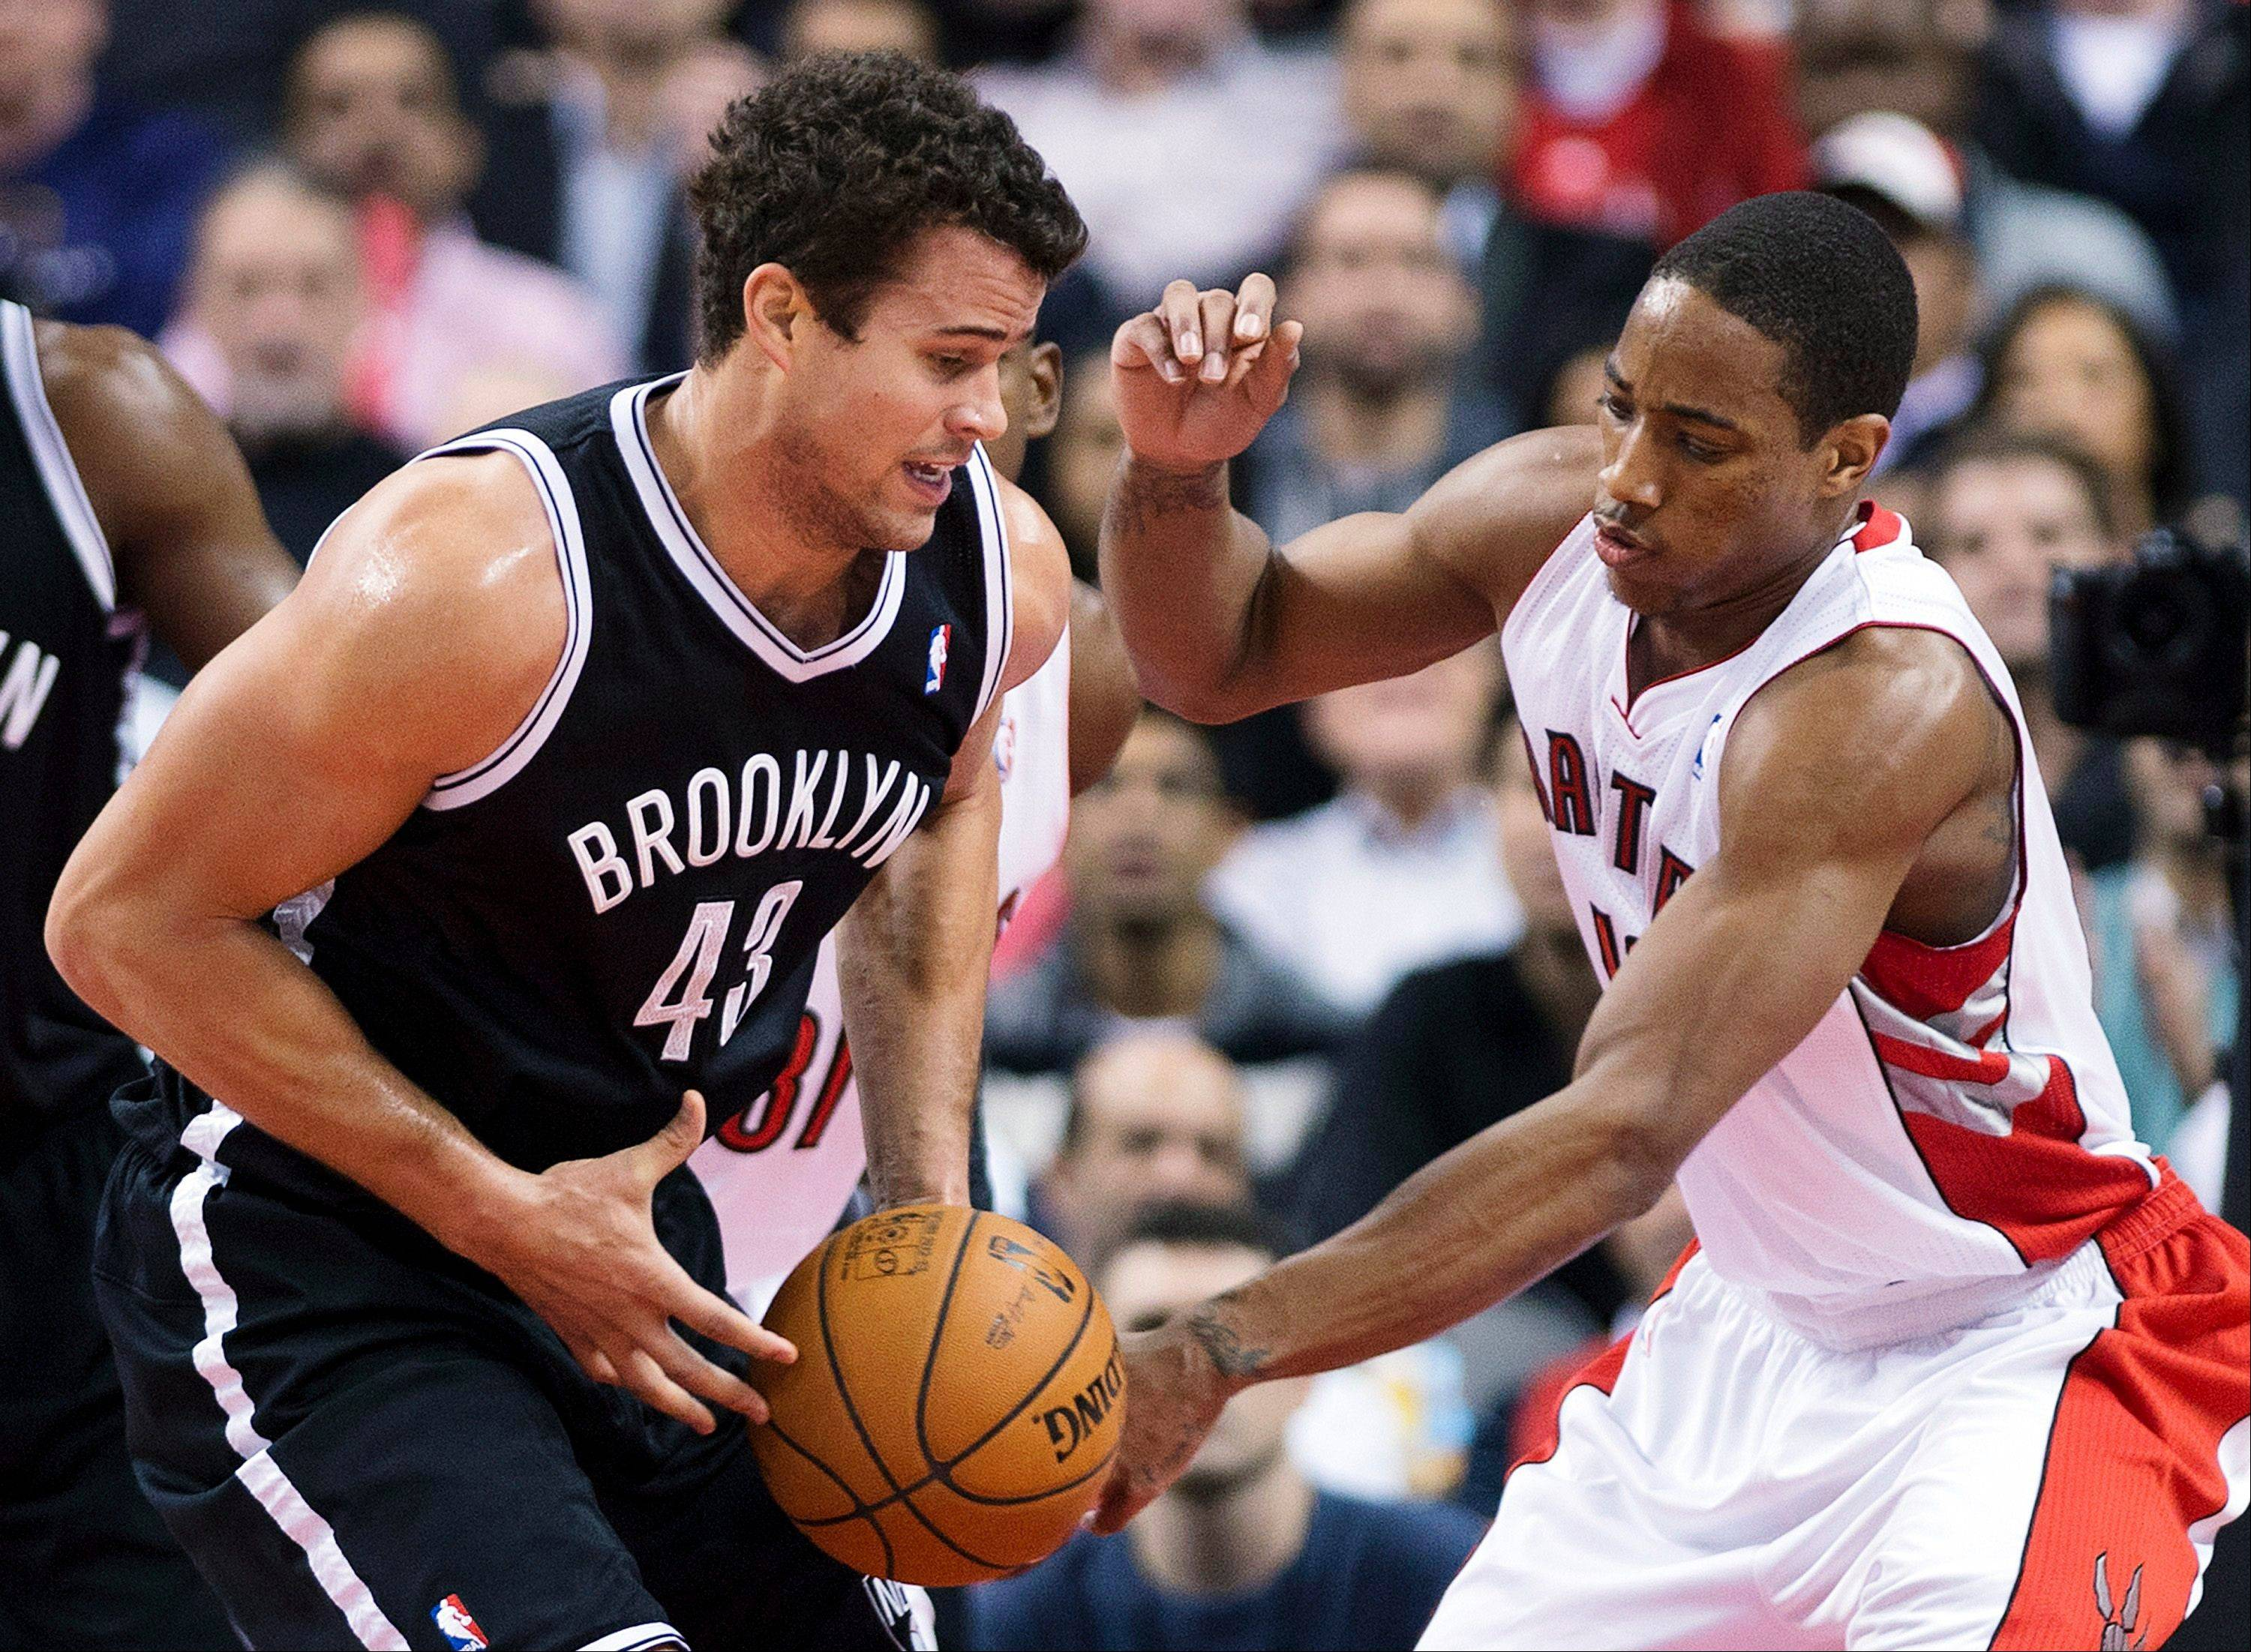 Toronto Raptors forward DeMar DeRozan, right, battles for the ball against Brooklyn Nets forward Kris Humphries, left, Wednesday during the first half in Toronto.